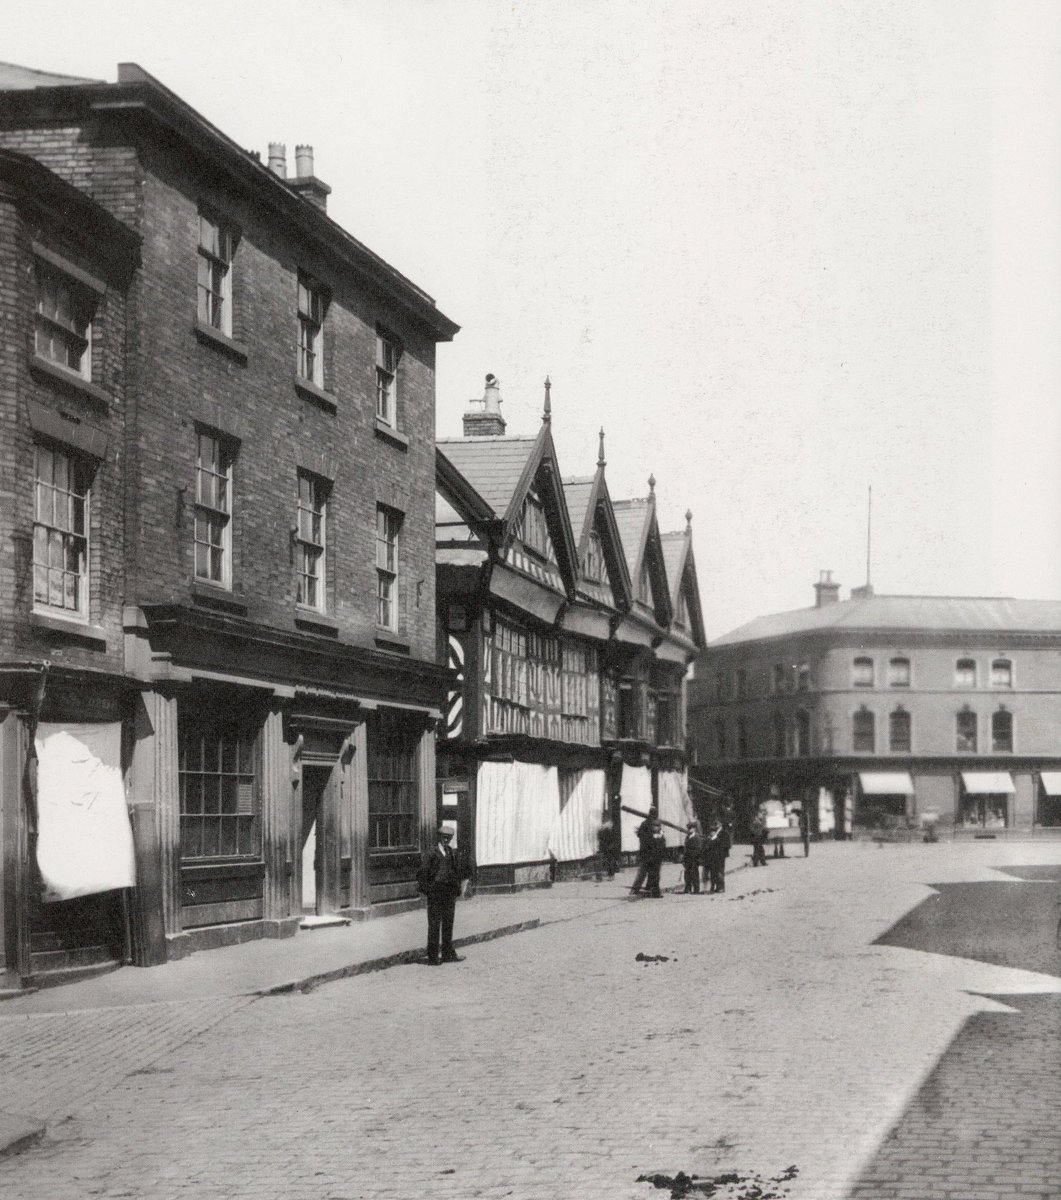 Nantwich High Street, 1898 - this part of town was destroyed by the Great Fire of Nantwich in 1583, the buildings in this image would have been built after this event.  #Cheshirehistory  #Discovernantwich #NantwichMuseum   photo credit Dorothy Nicollepic.twitter.com/5y8jhOrCD1